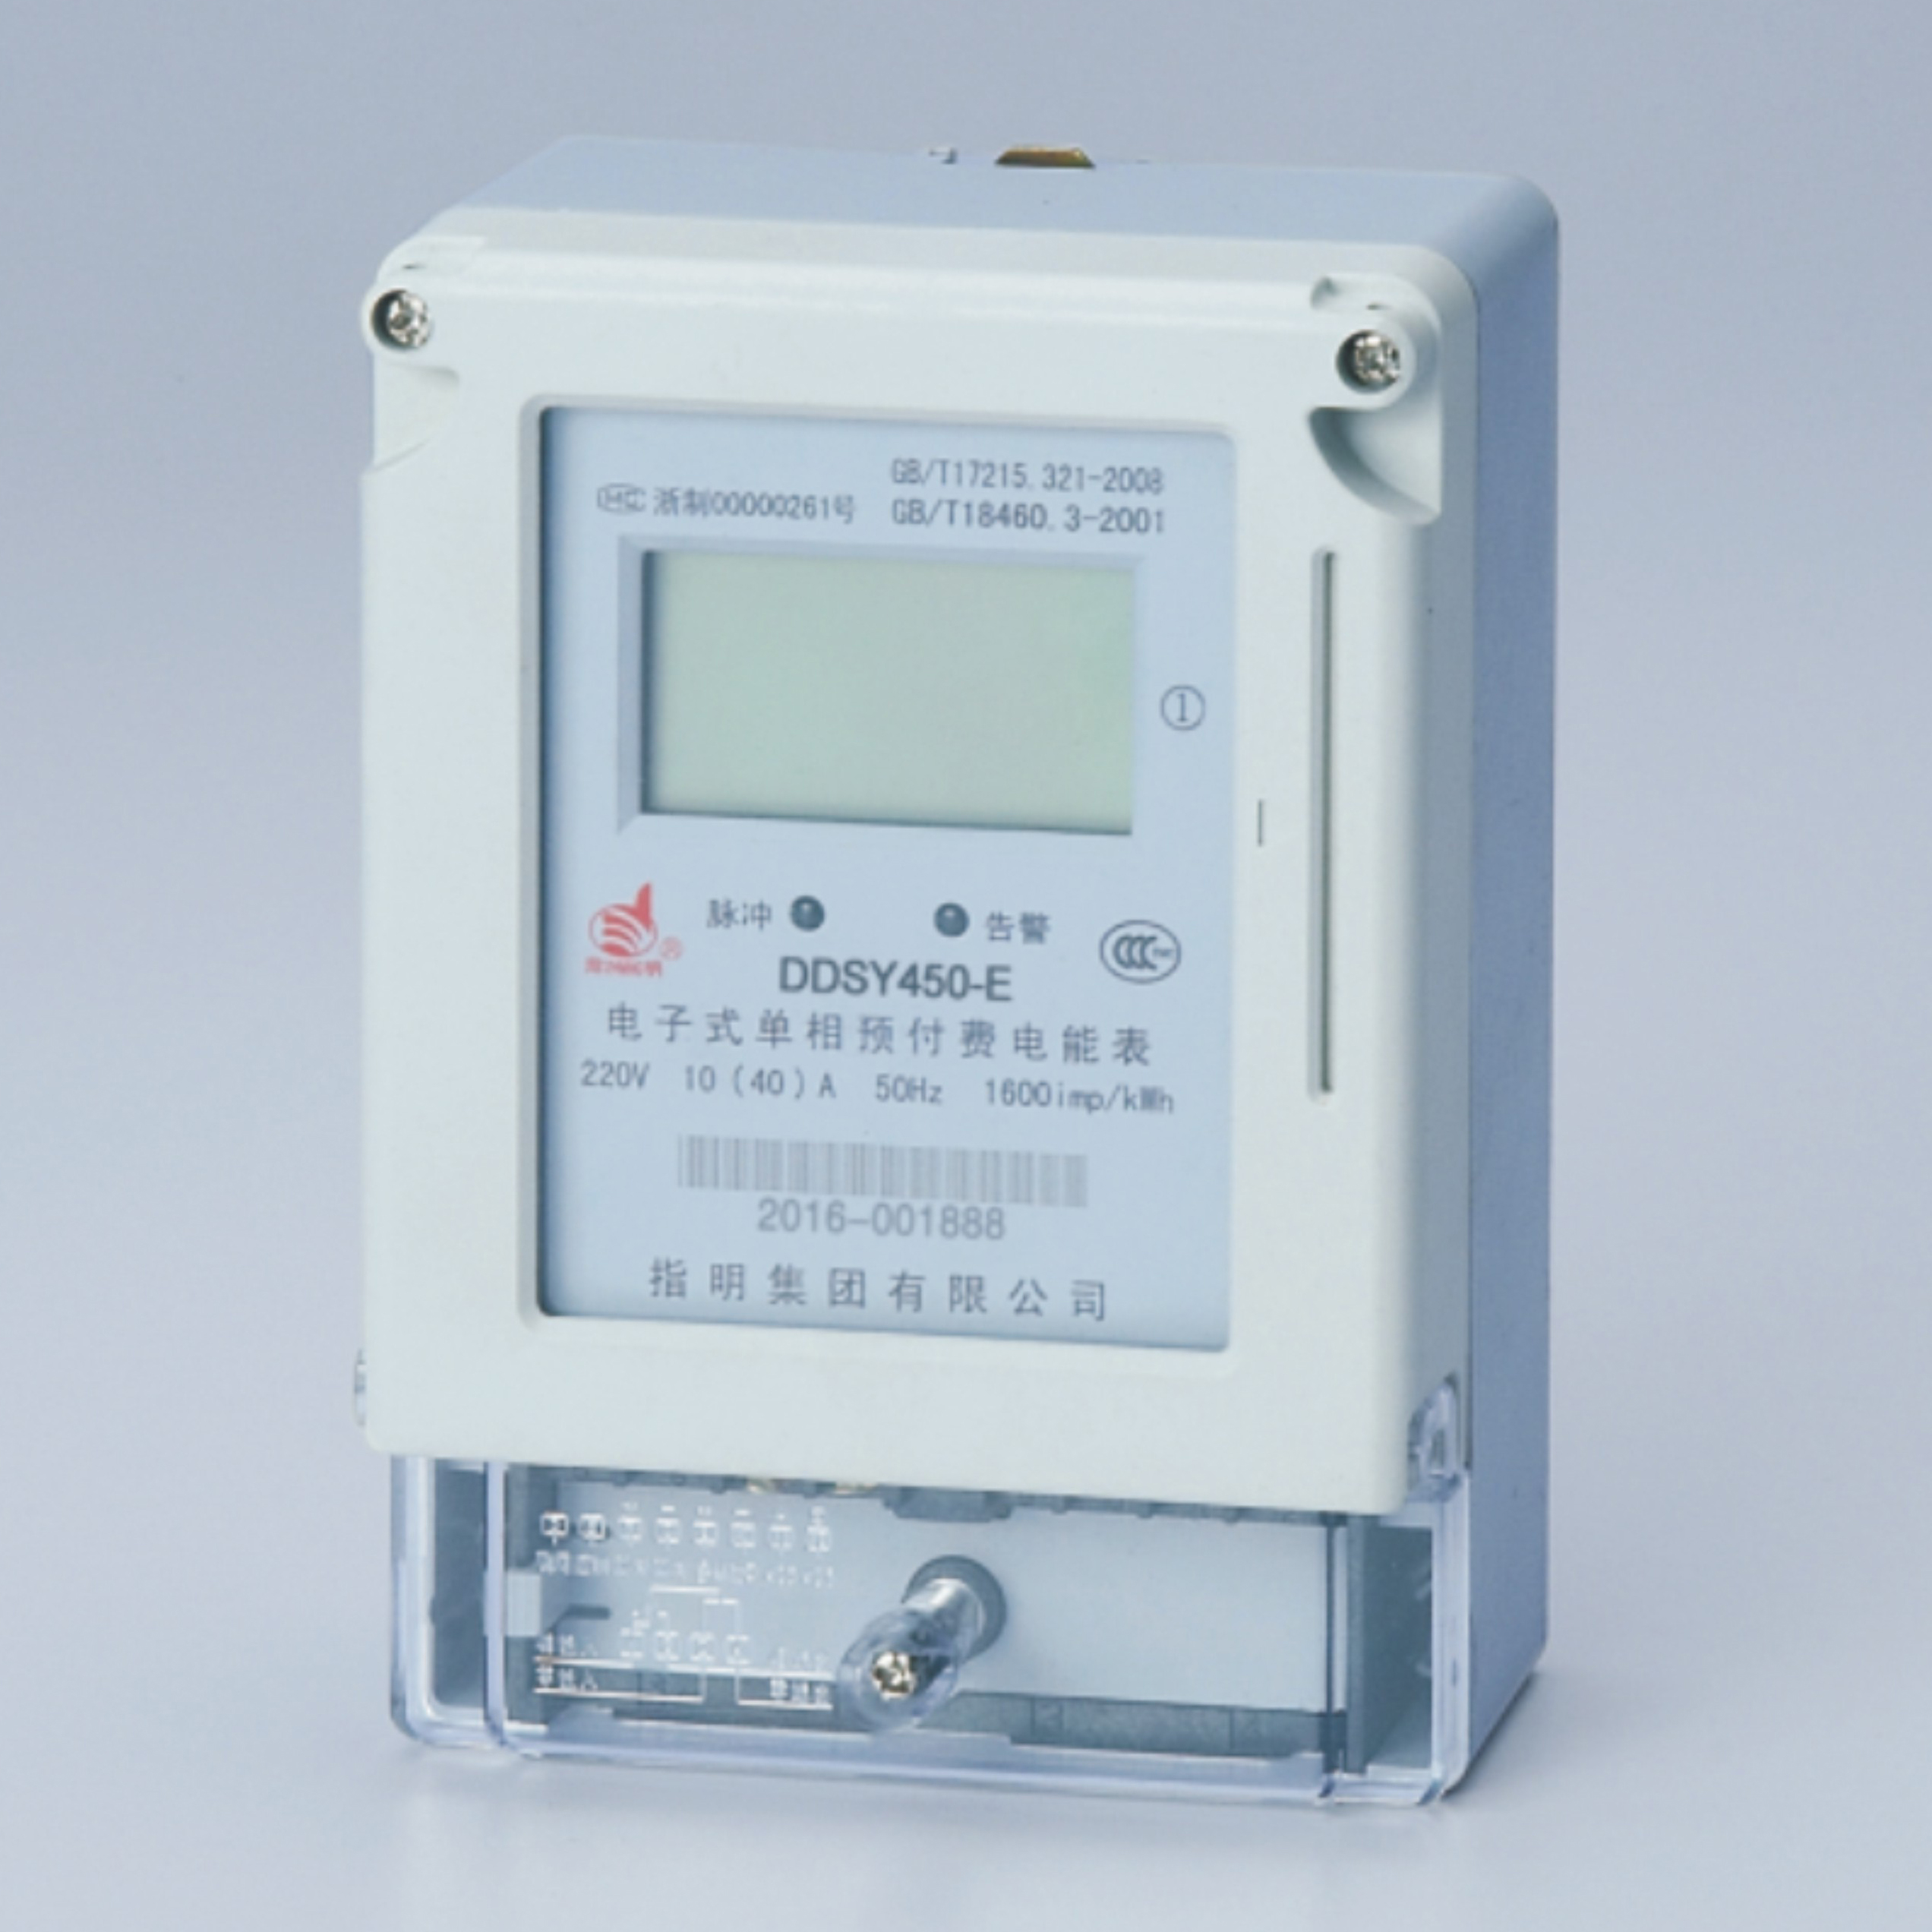 DDSY450-E Single phase electronic prepaid energy meter with one card (IC)